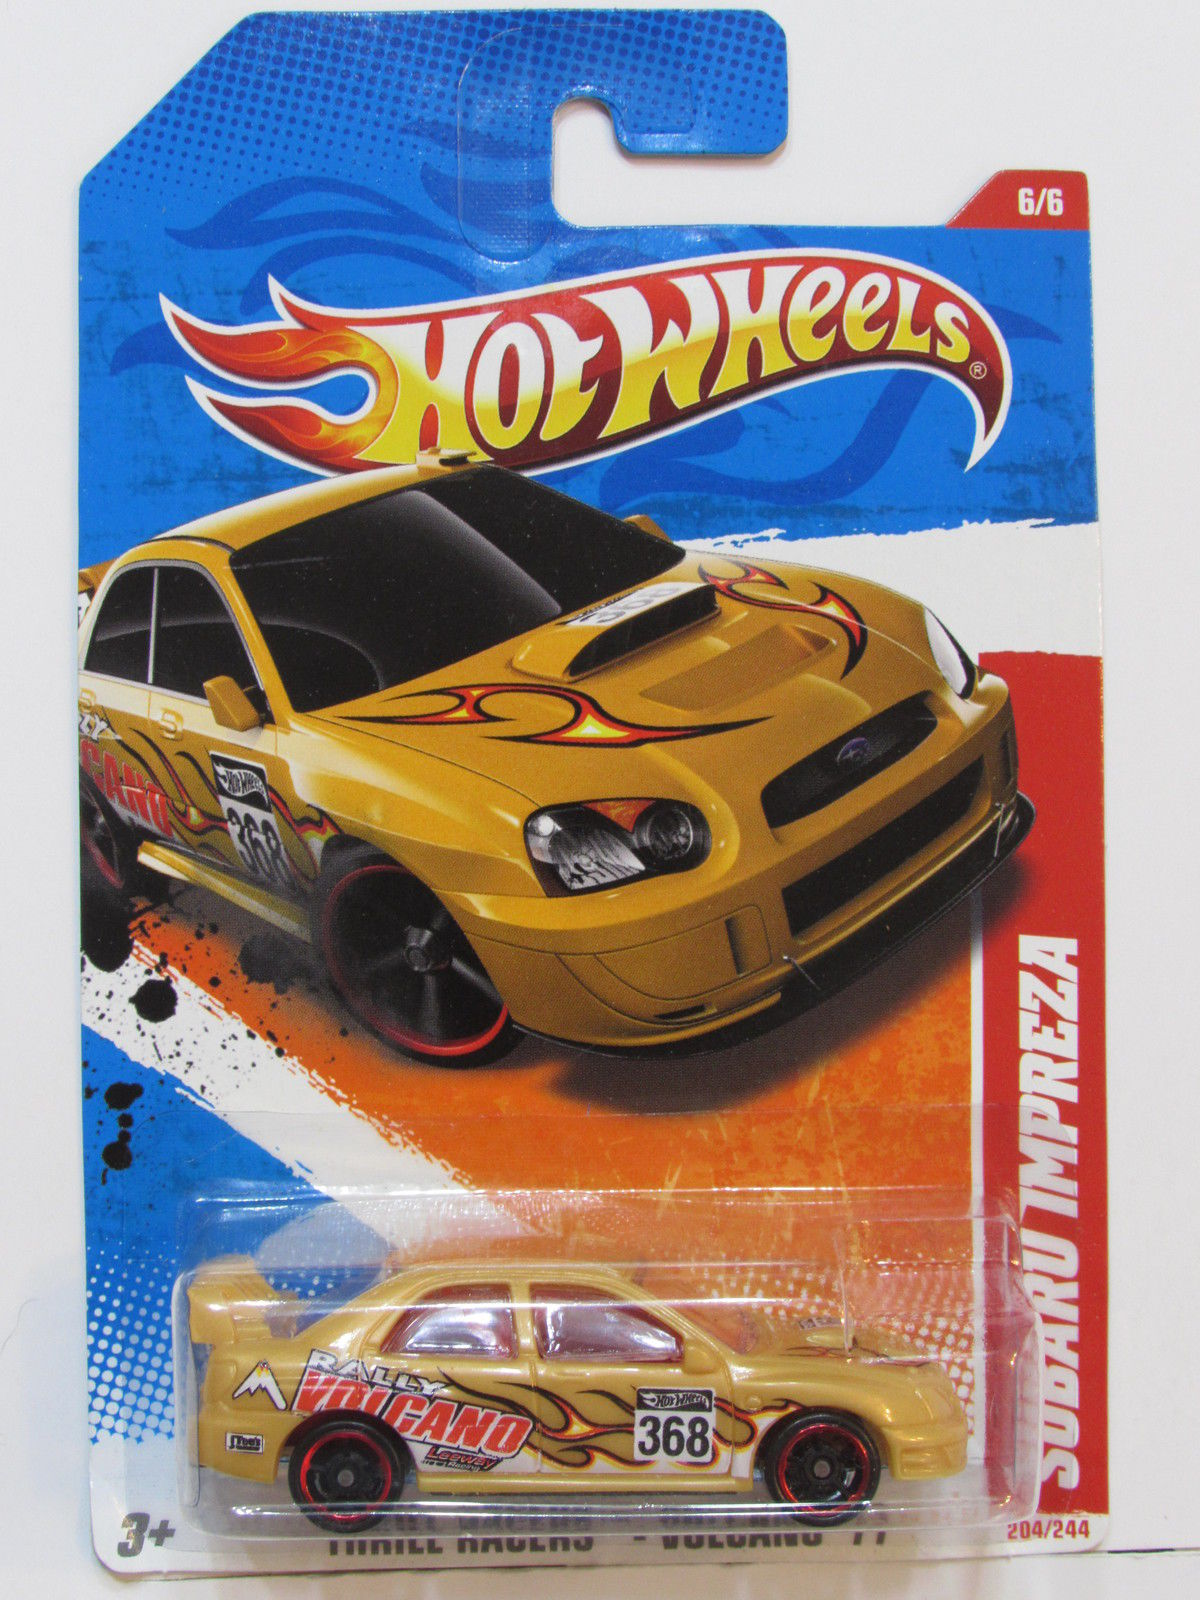 HOT WHEELS 2011 THRILL RACERS SUBARU IMPREZA